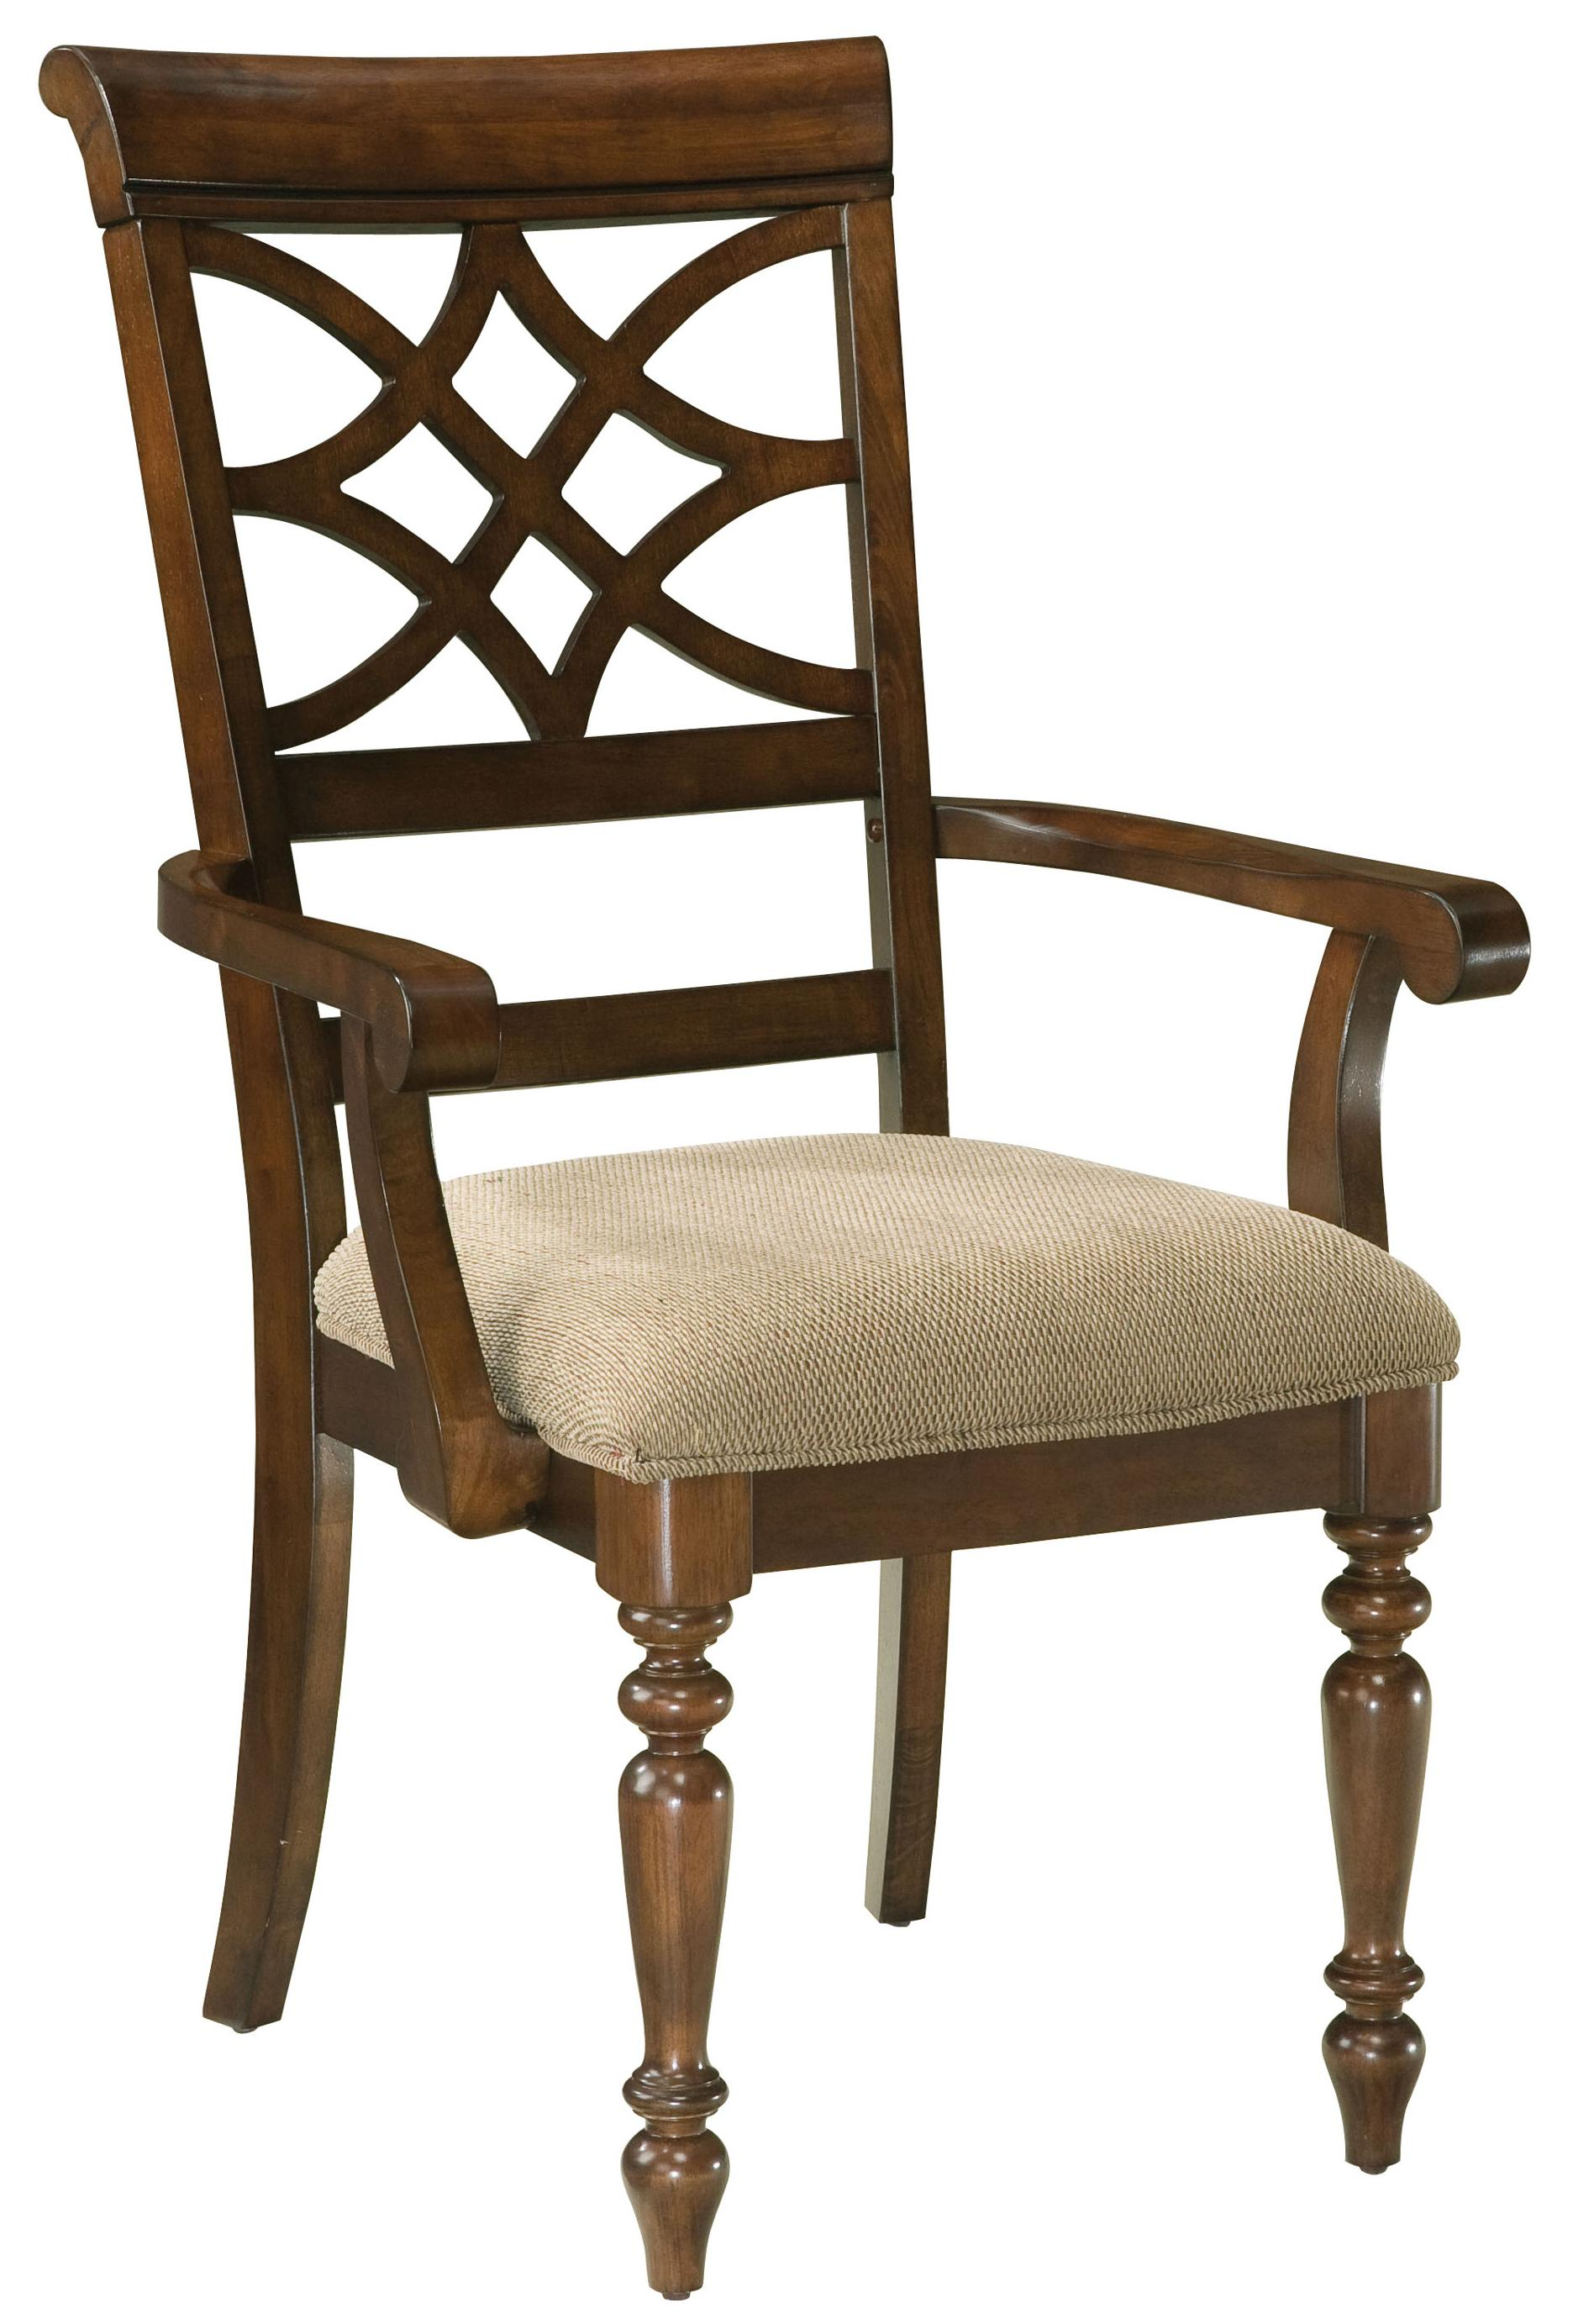 Standard furniture woodmont 19185 upholstered arm chair for Upholstered dining chairs with black legs